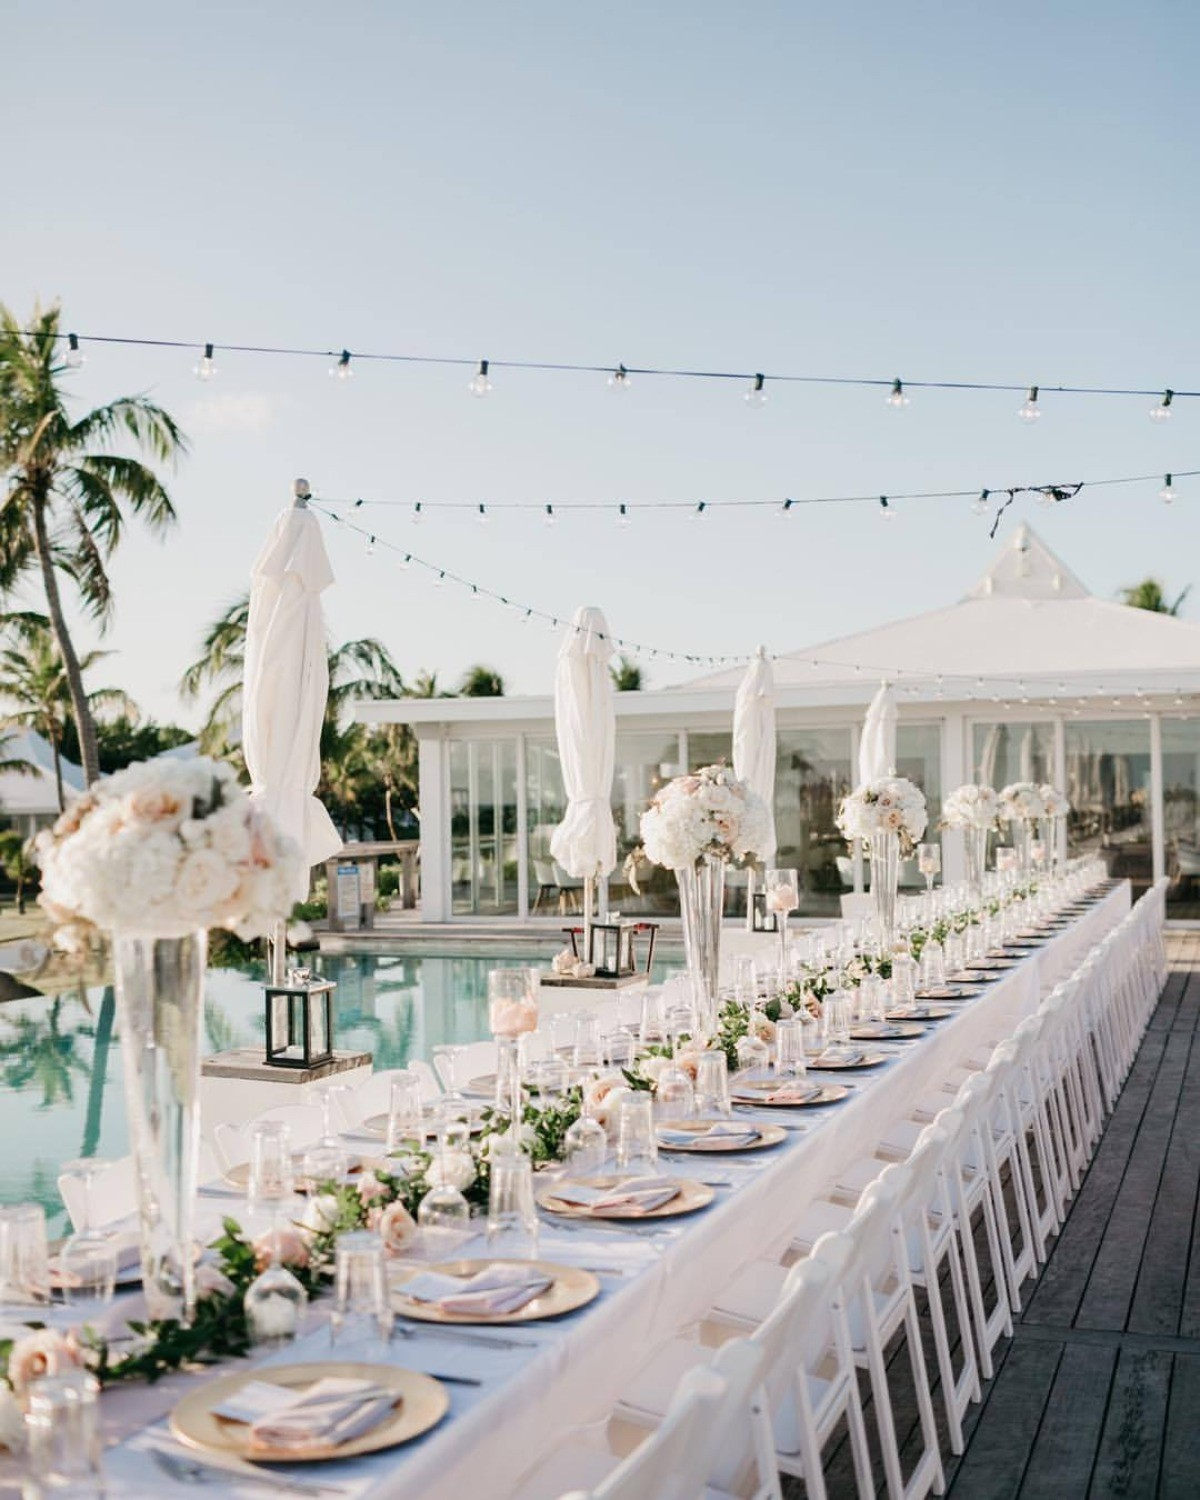 Chic Bahamas Weddings and Events